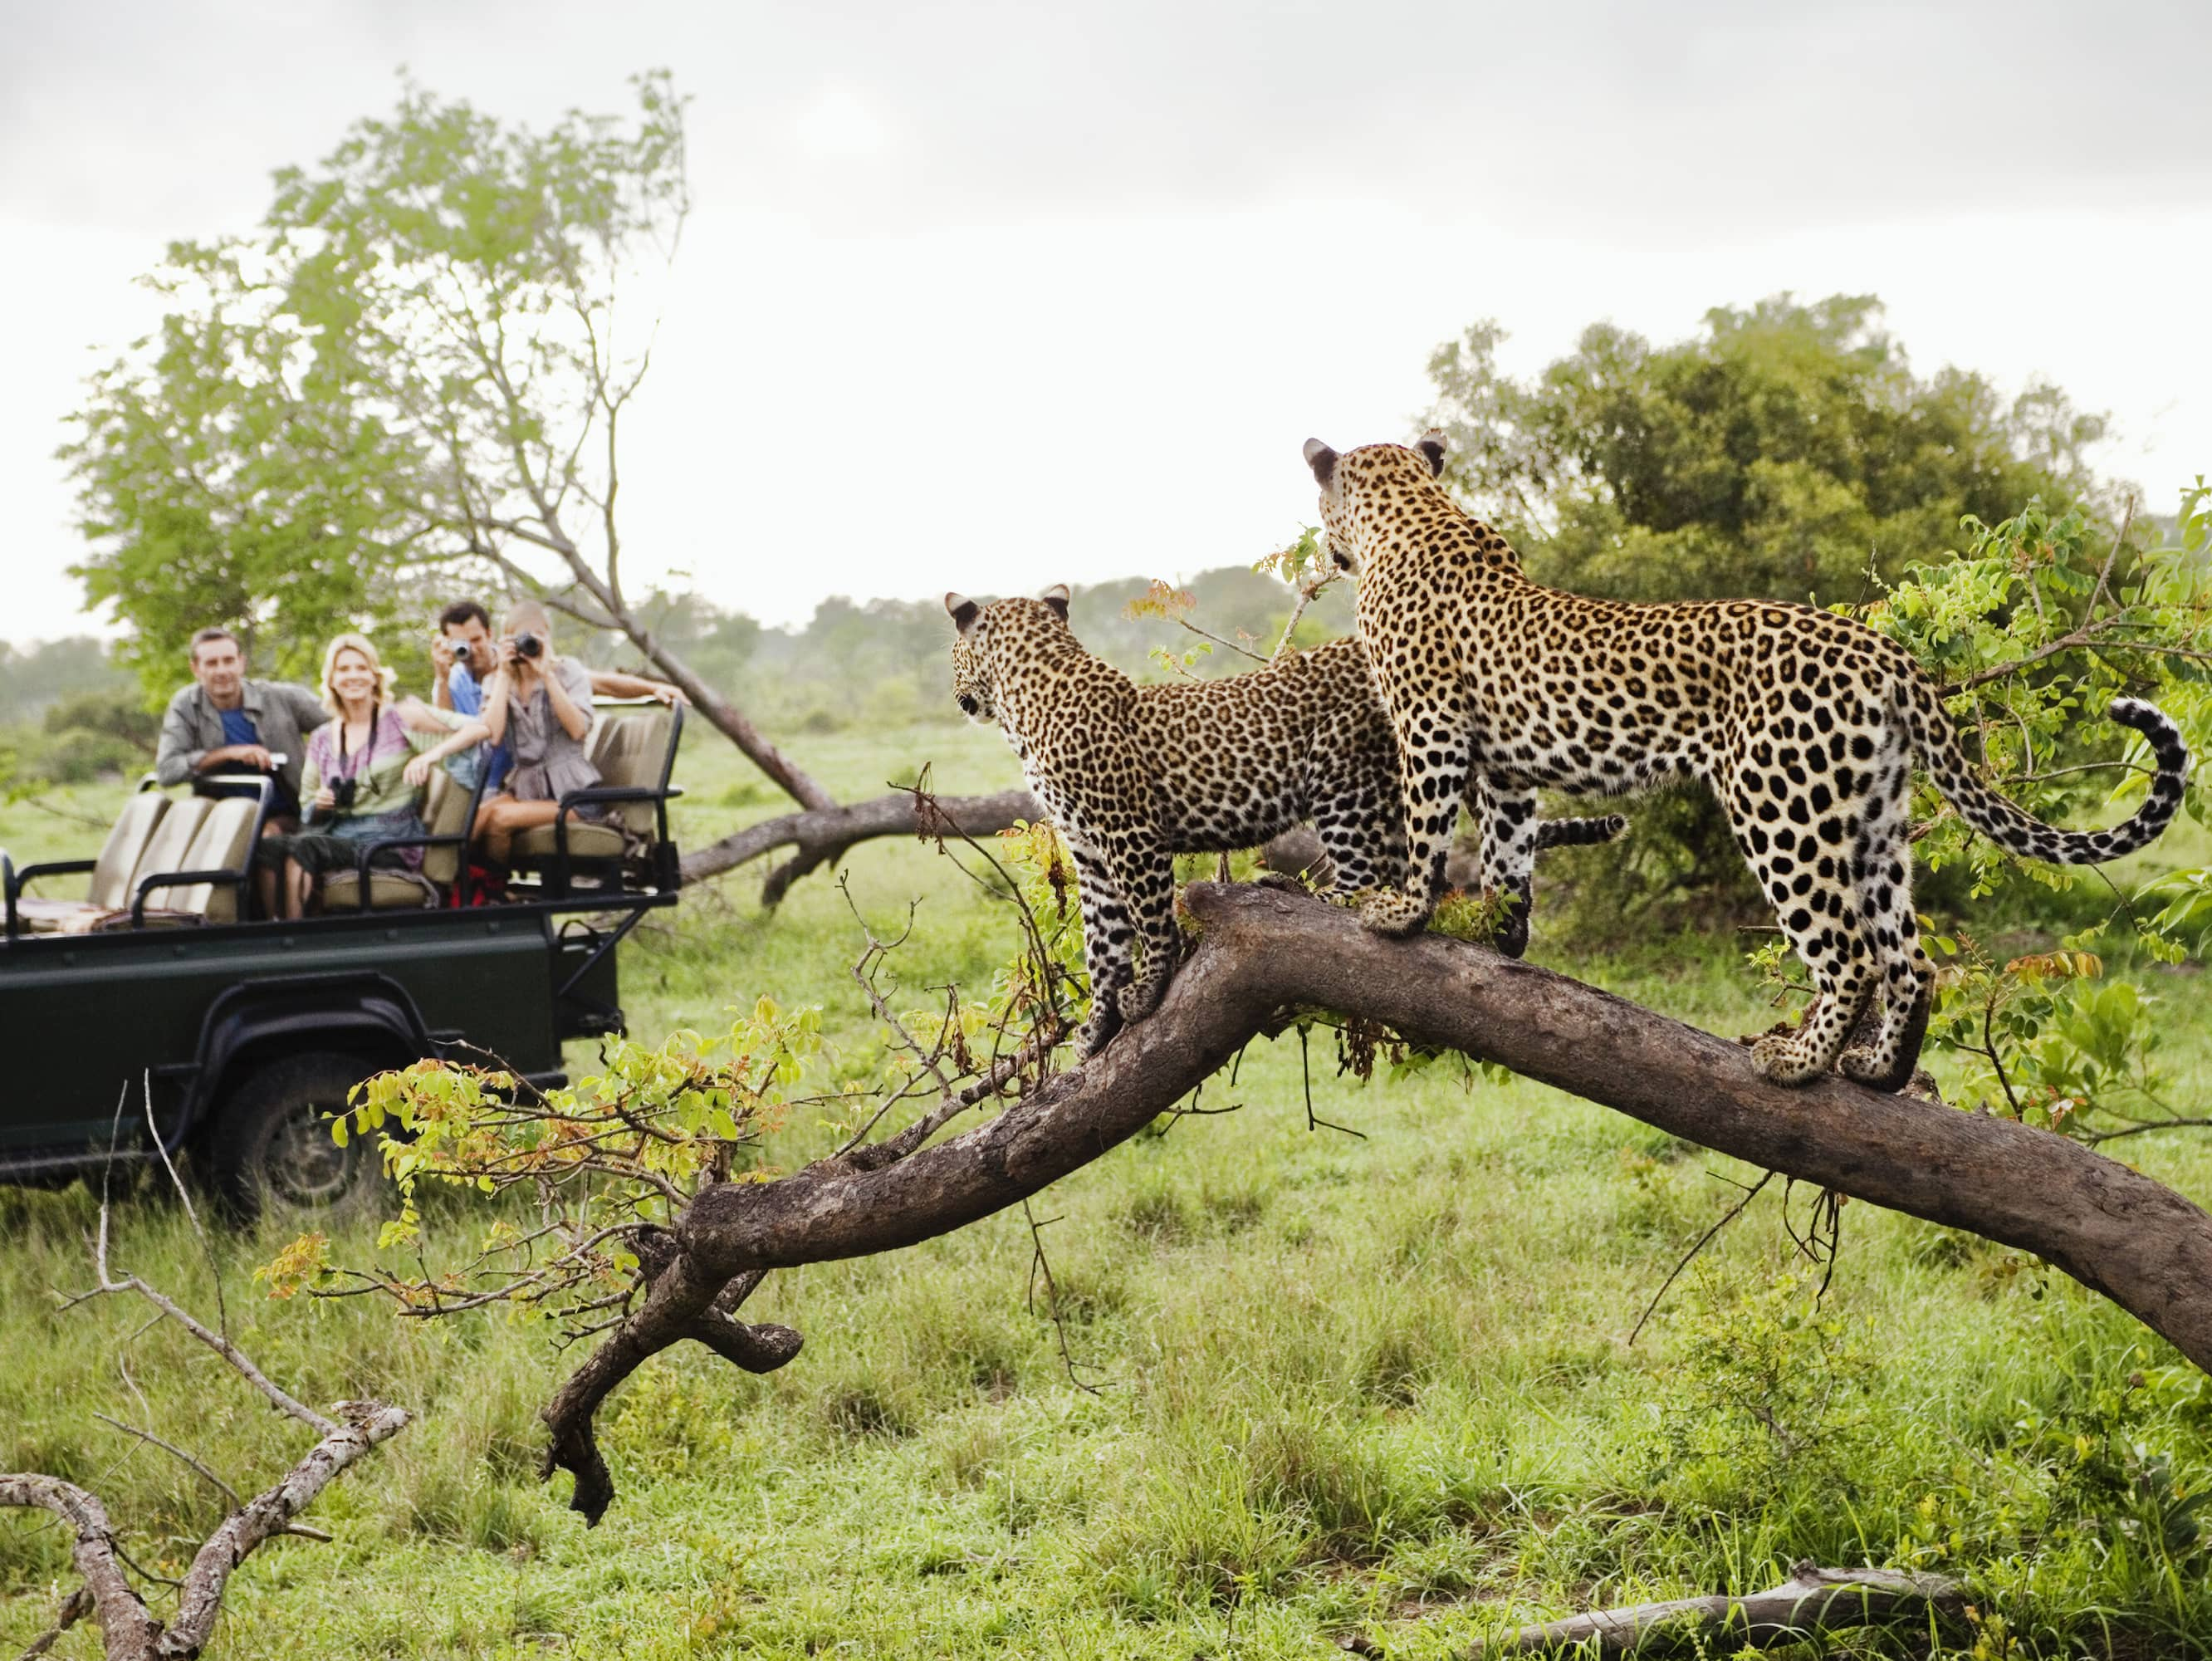 OPT FOR A CLASSIC SAFARI EXPERIENCE